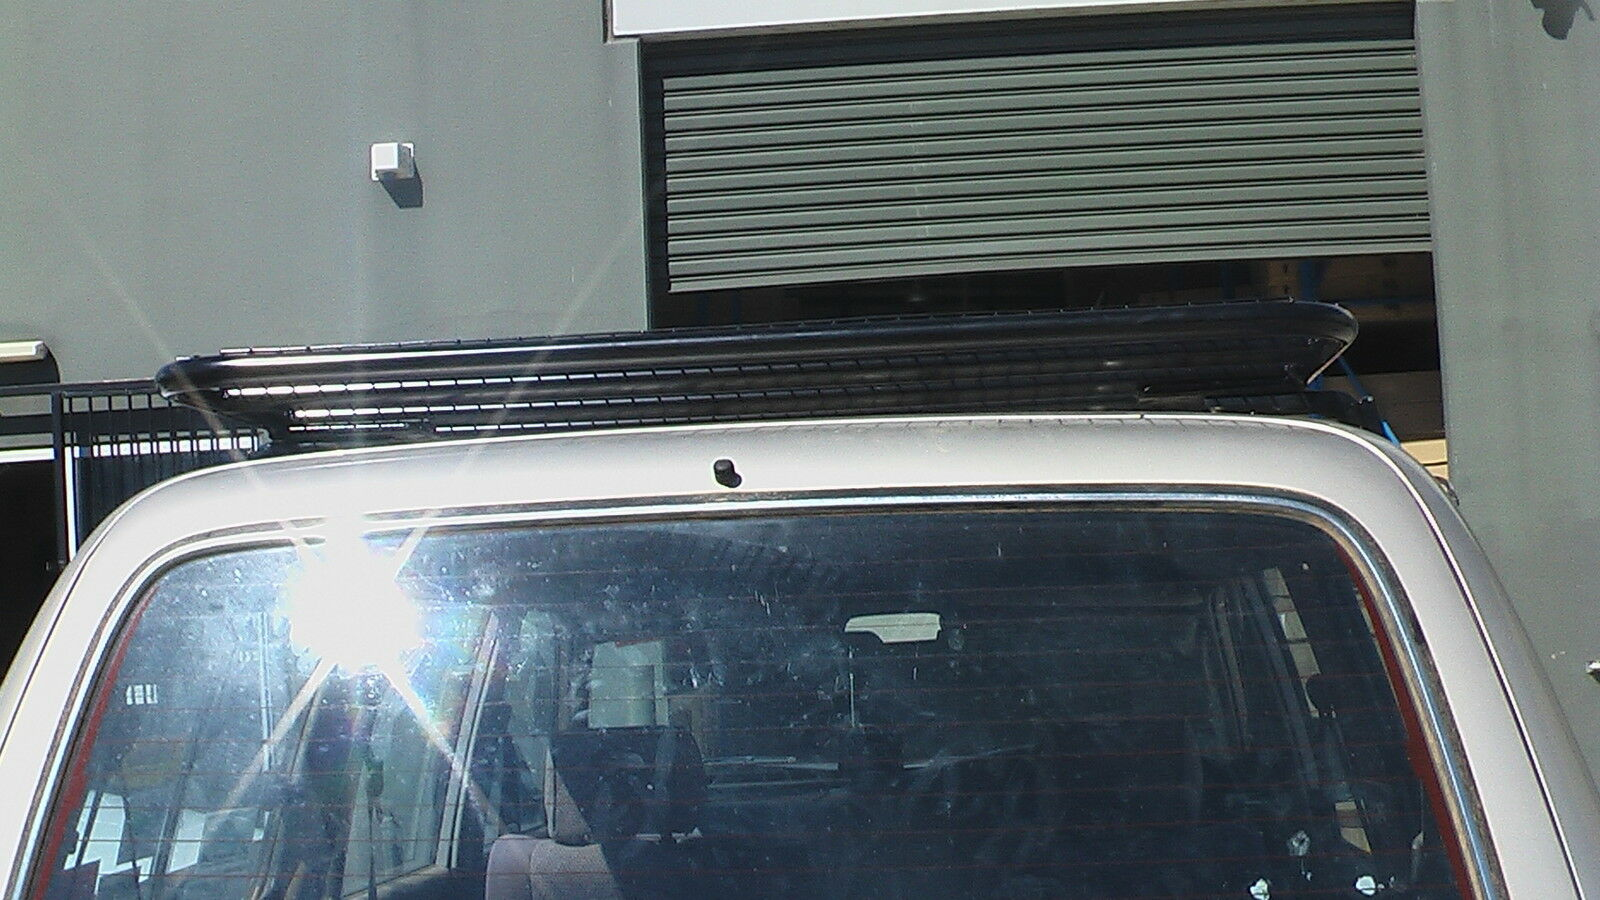 Platform Flat Alloy Roof Rack 2200x1250mm For Mitsubishi Delica L400 Central Locking Wiring Diagram 1 Of 7only 3 Available